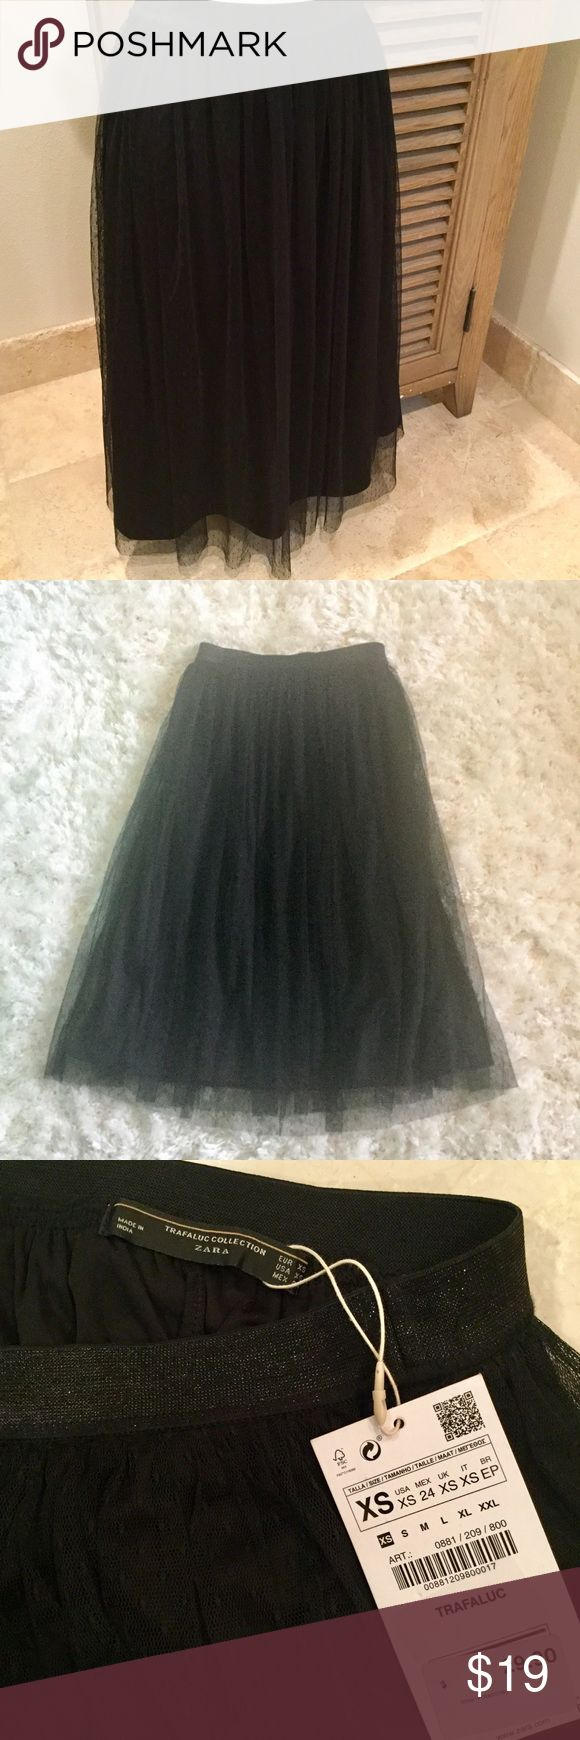 Zara Black Tulle Skirt Brand new with tags, its a midi 2 layer skirt, has elastic waist, super chick and comfy at the same time! Zara Skirts Midi